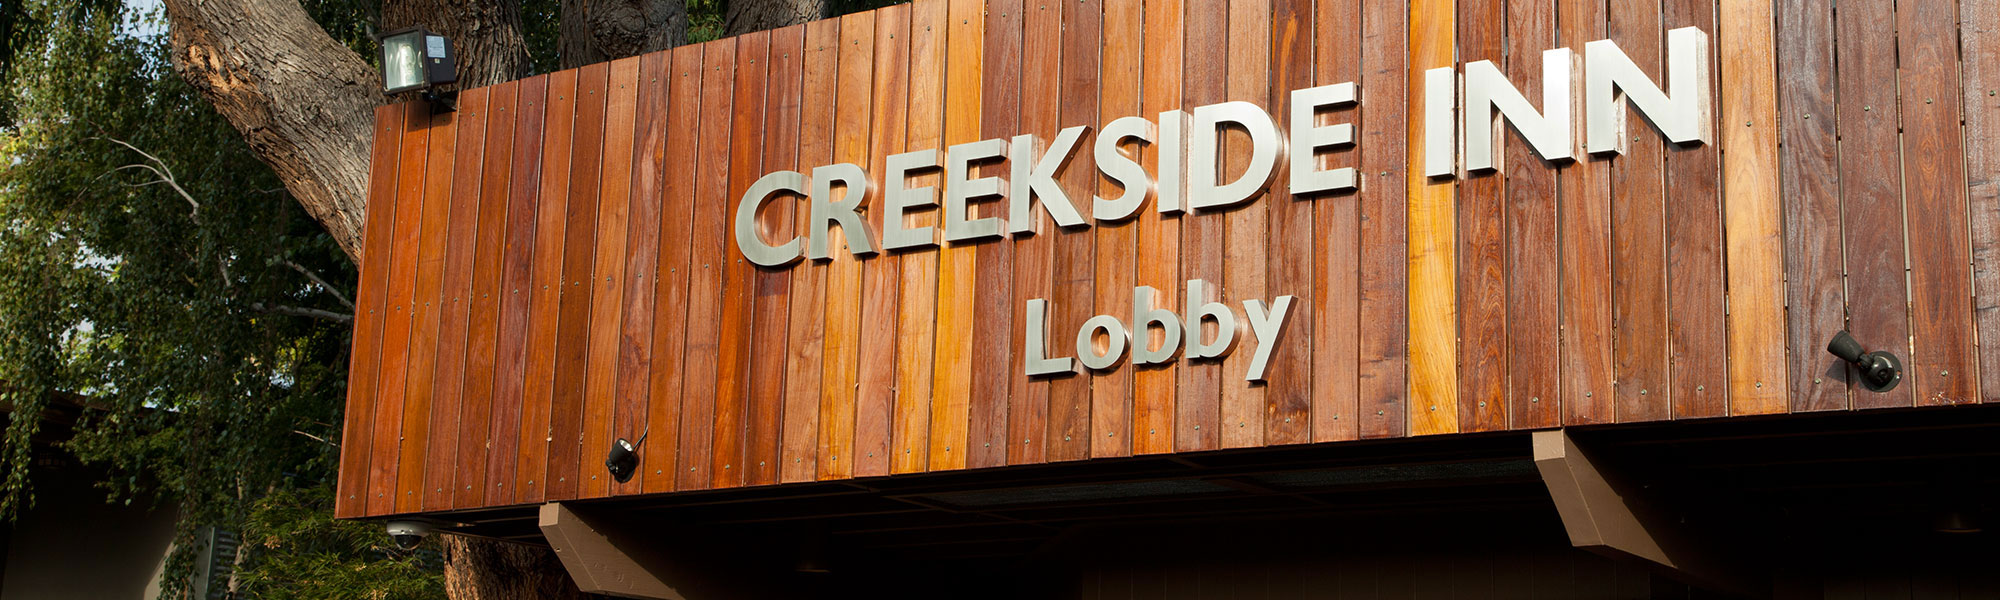 Contact Us at Creekside Inn - A Greystone Hotel, Palo Alto